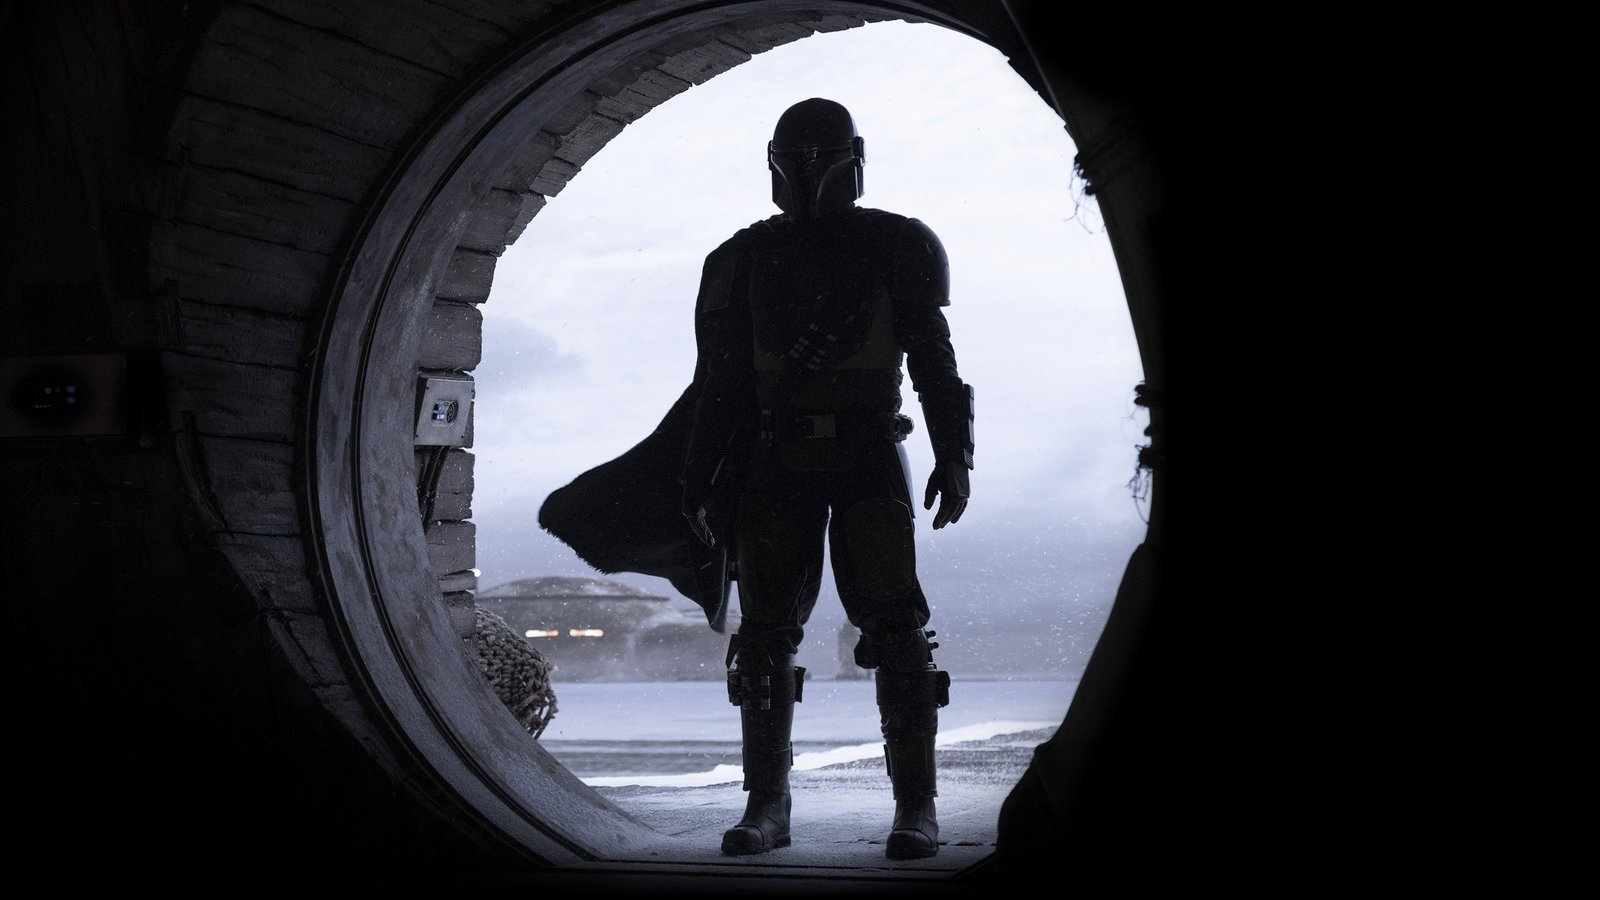 The Mandalorian | Chapter 1: The Mandalorian Episode Guide